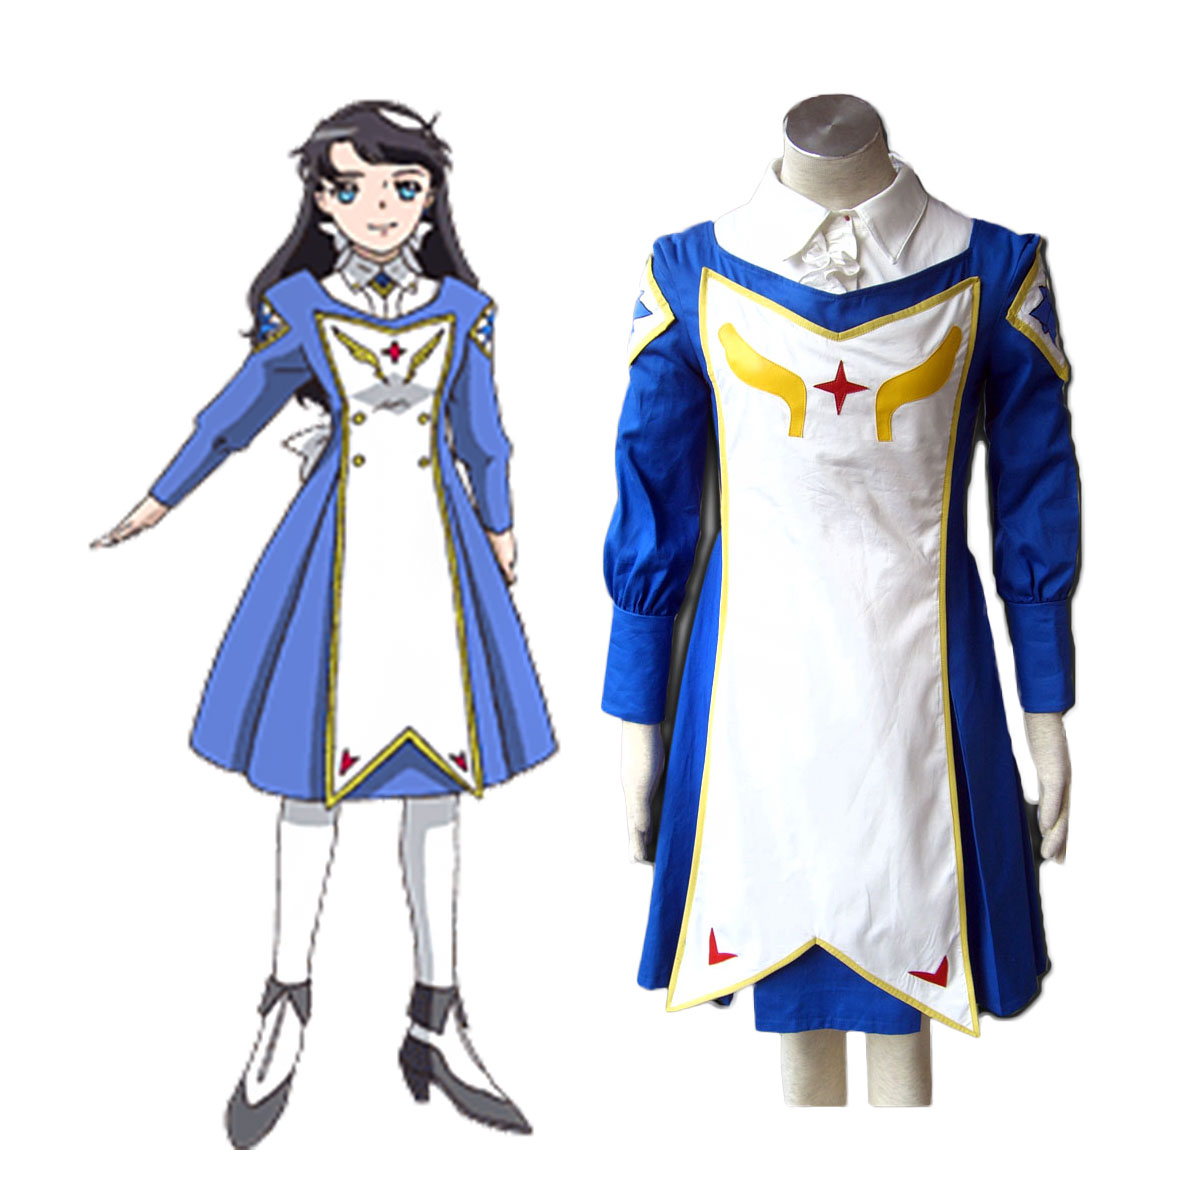 My-Otome Rena Sayers Cosplay Costumes AU